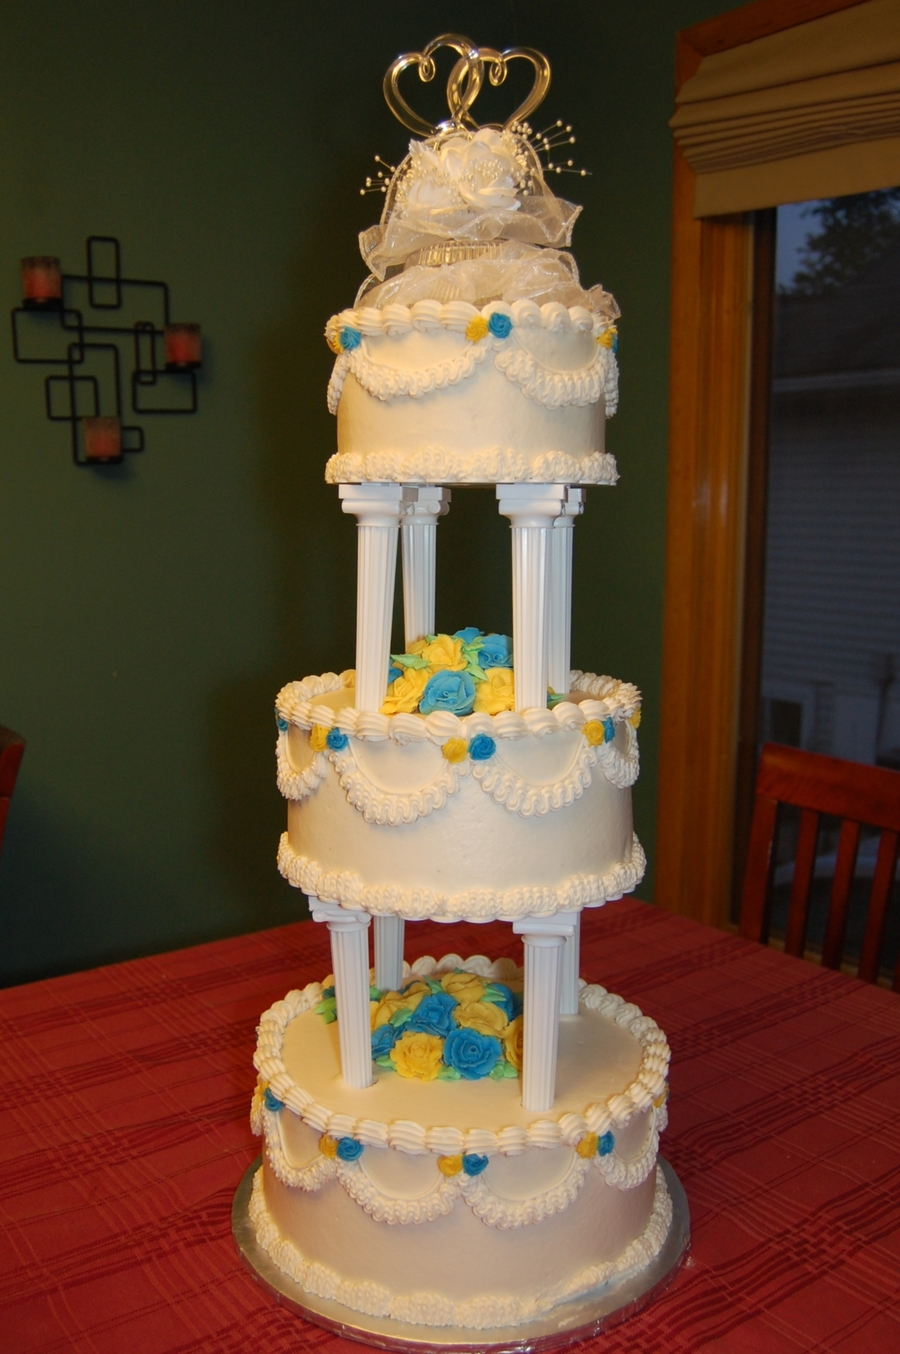 Replica Wedding Cake For 30Th Anniversary on Cake Central